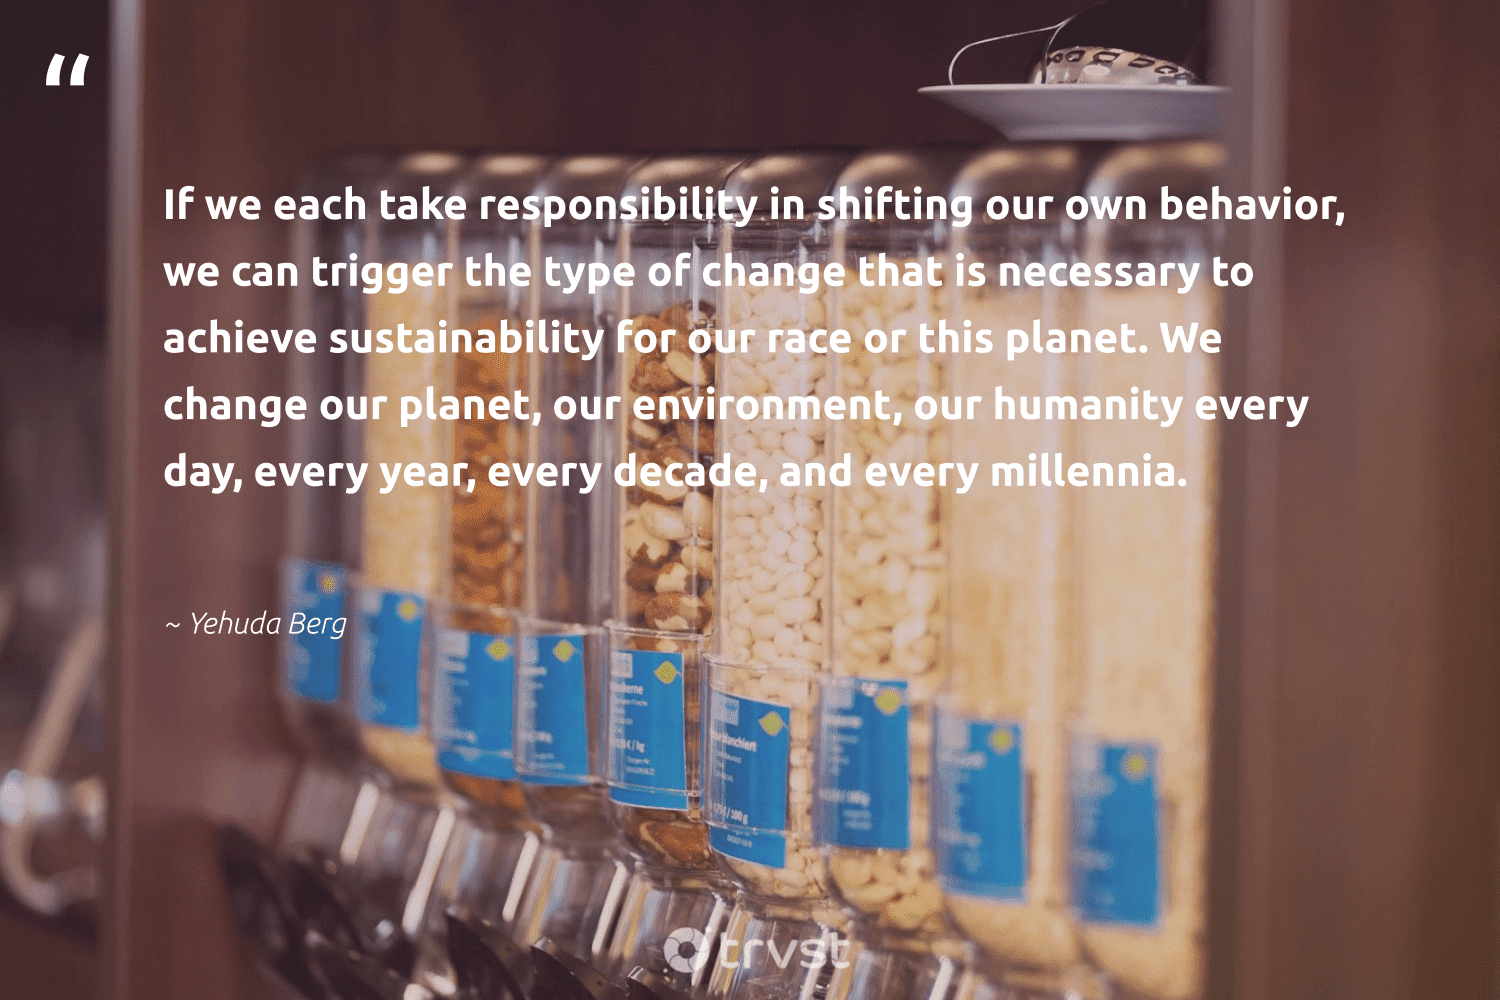 """""""If we each take responsibility in shifting our own behavior, we can trigger the type of change that is necessary to achieve sustainability for our race or this planet. We change our planet, our environment, our humanity every day, every year, every decade, and every millennia.""""  - Yehuda Berg #trvst #quotes #sustainability #environment #planet #conservation #mothernature #fashion #climatechange #impact #nature #earth"""